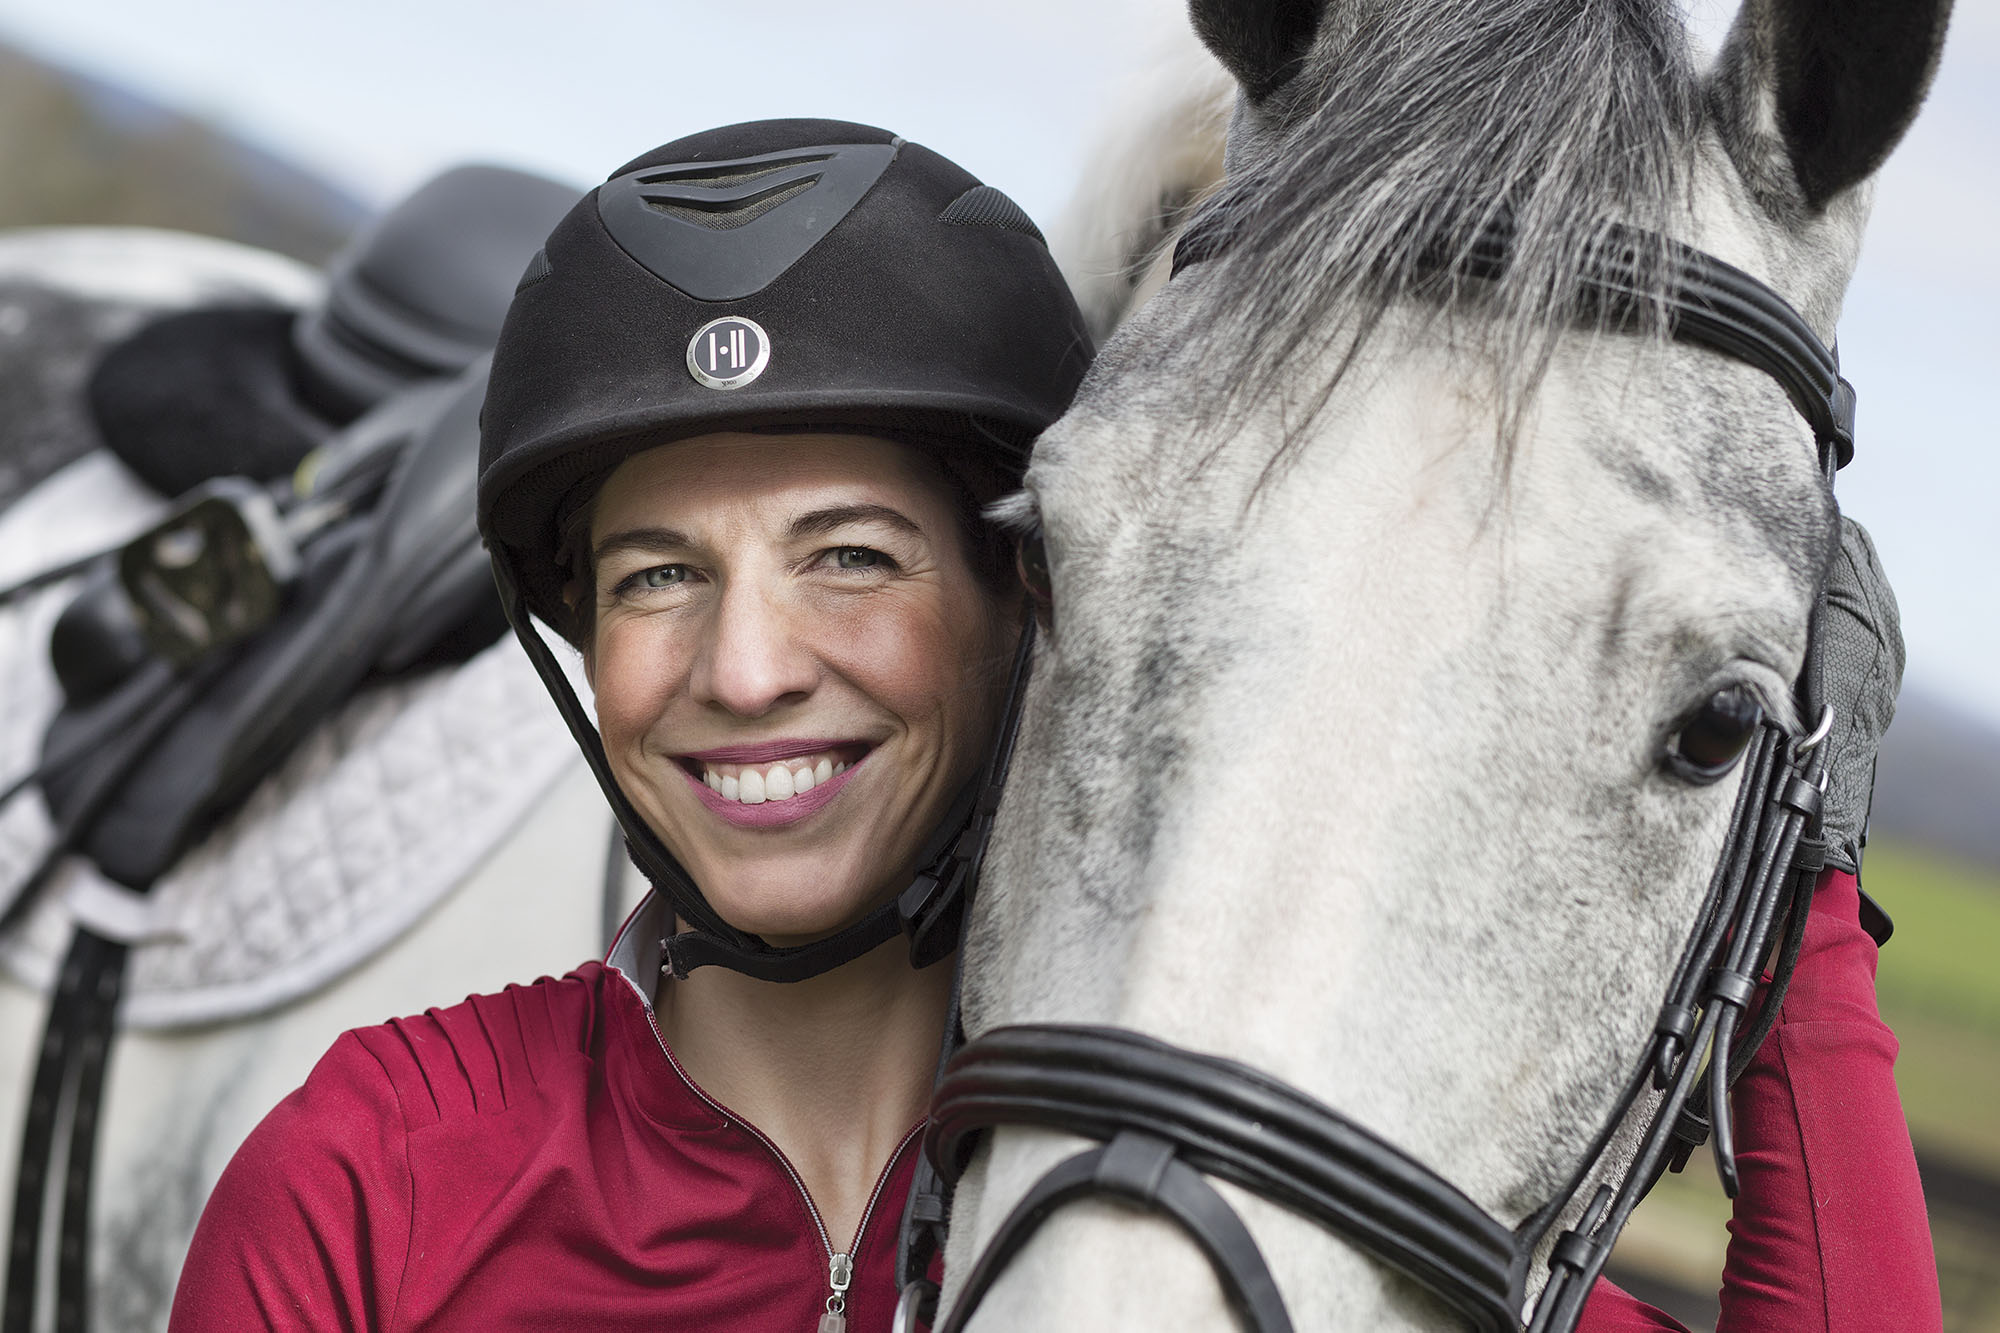 Riding Smart: For Brain Health, Don't Get Back on the Horse After a Fall